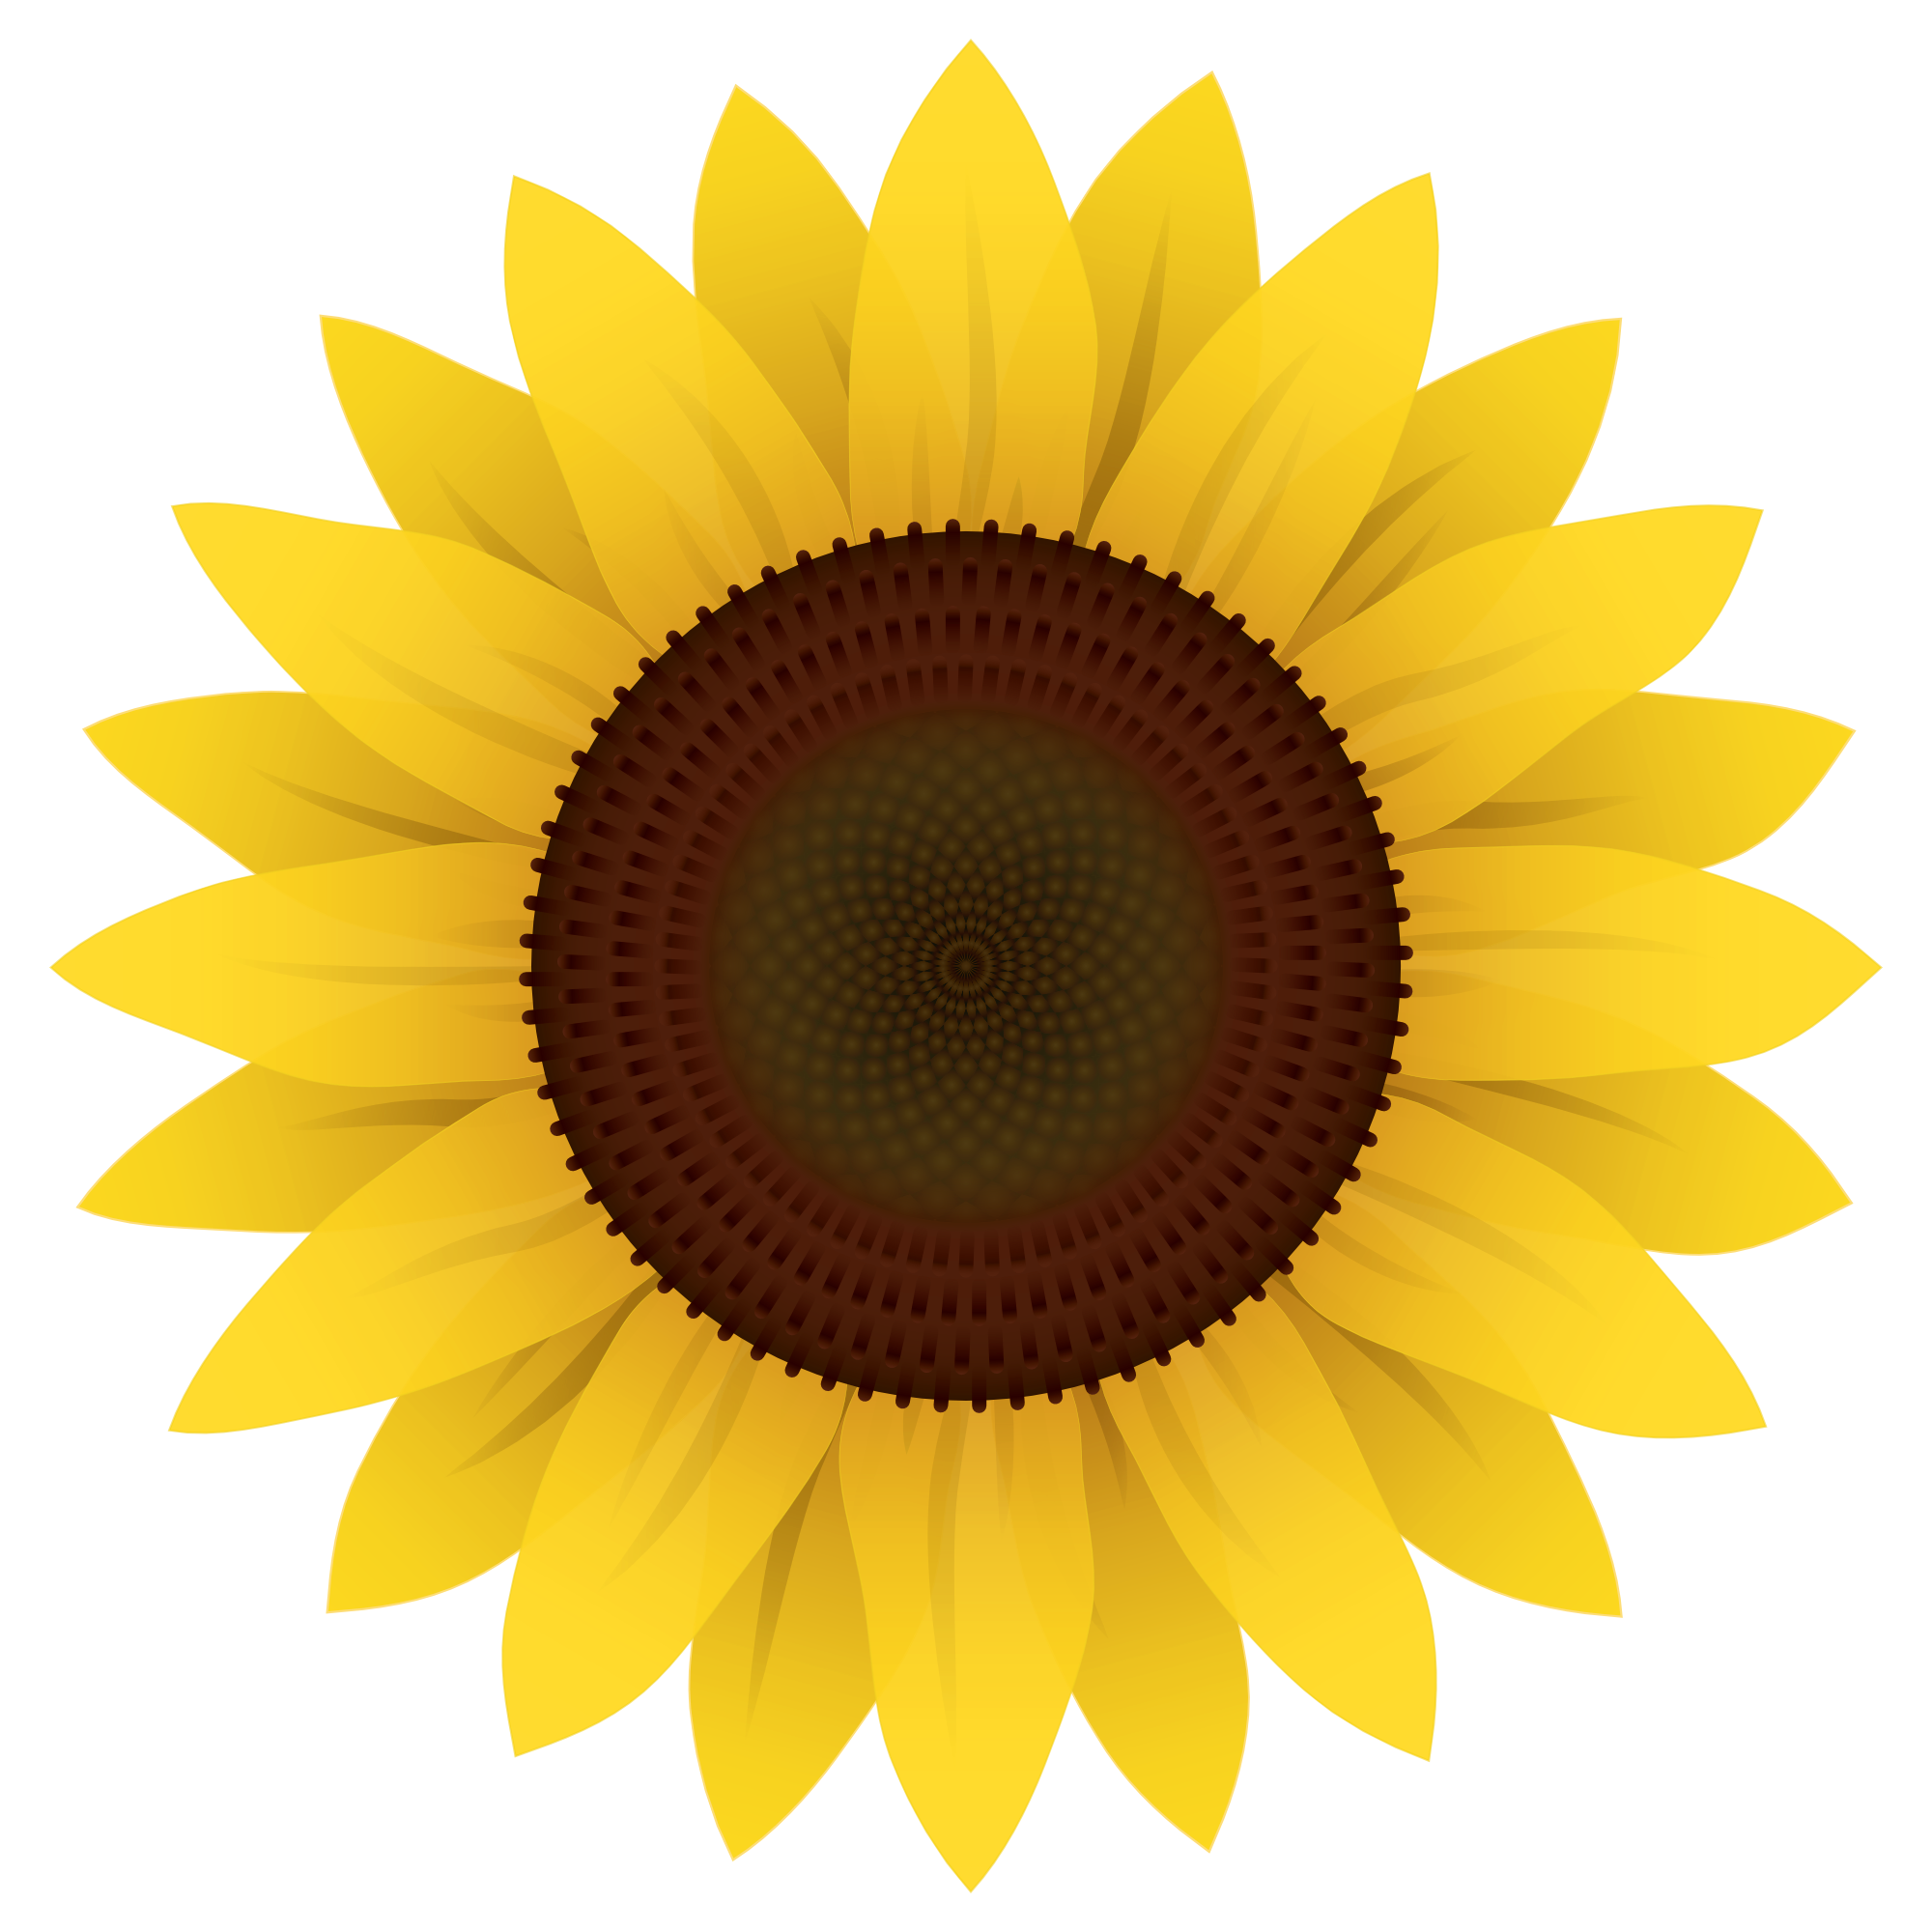 2000x2000 Sunflower Vector Png Image